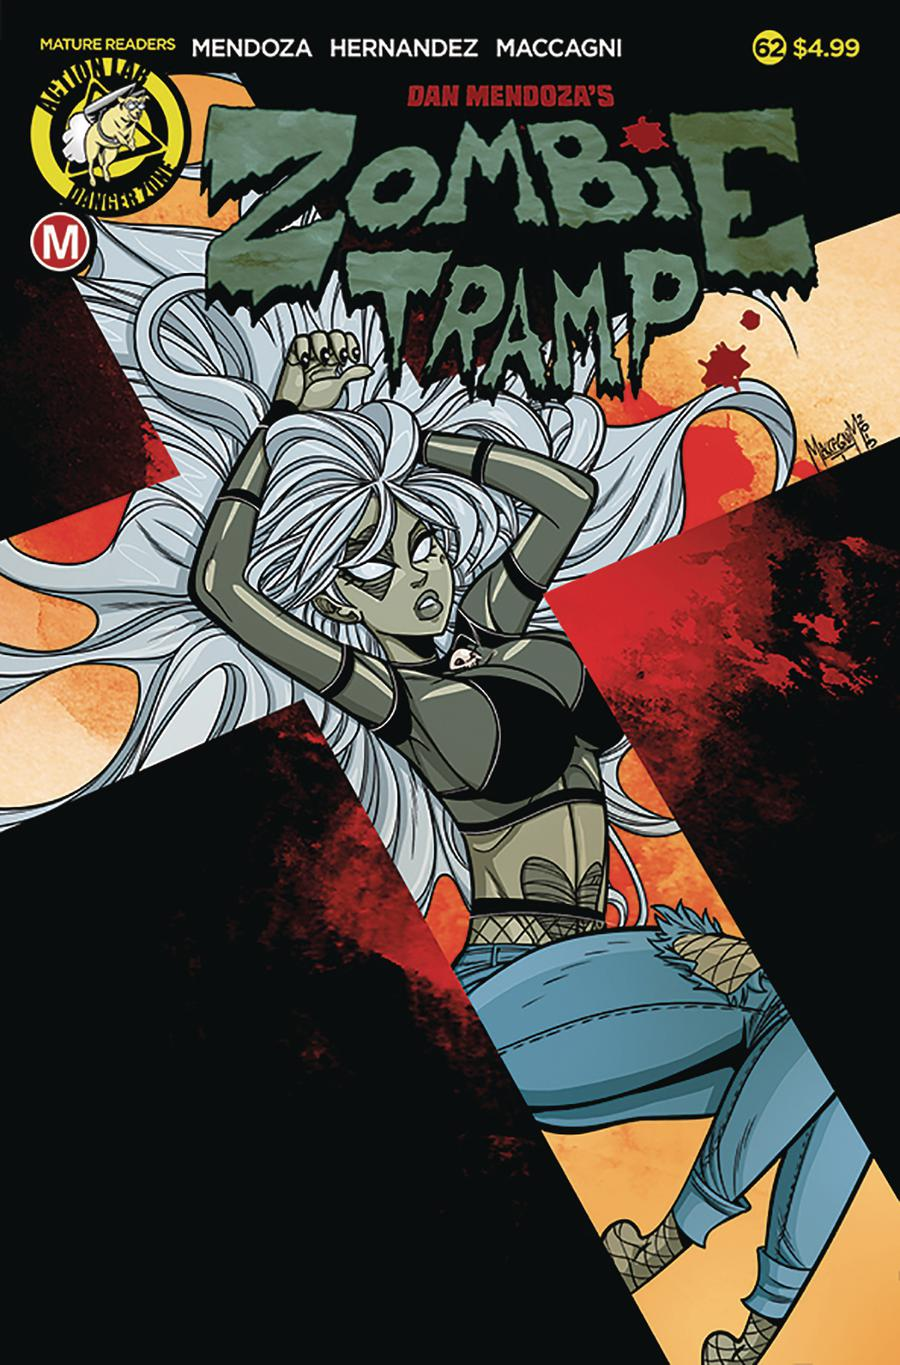 Zombie Tramp Vol 2 #62 Cover A Regular Marco Maccagni Cover